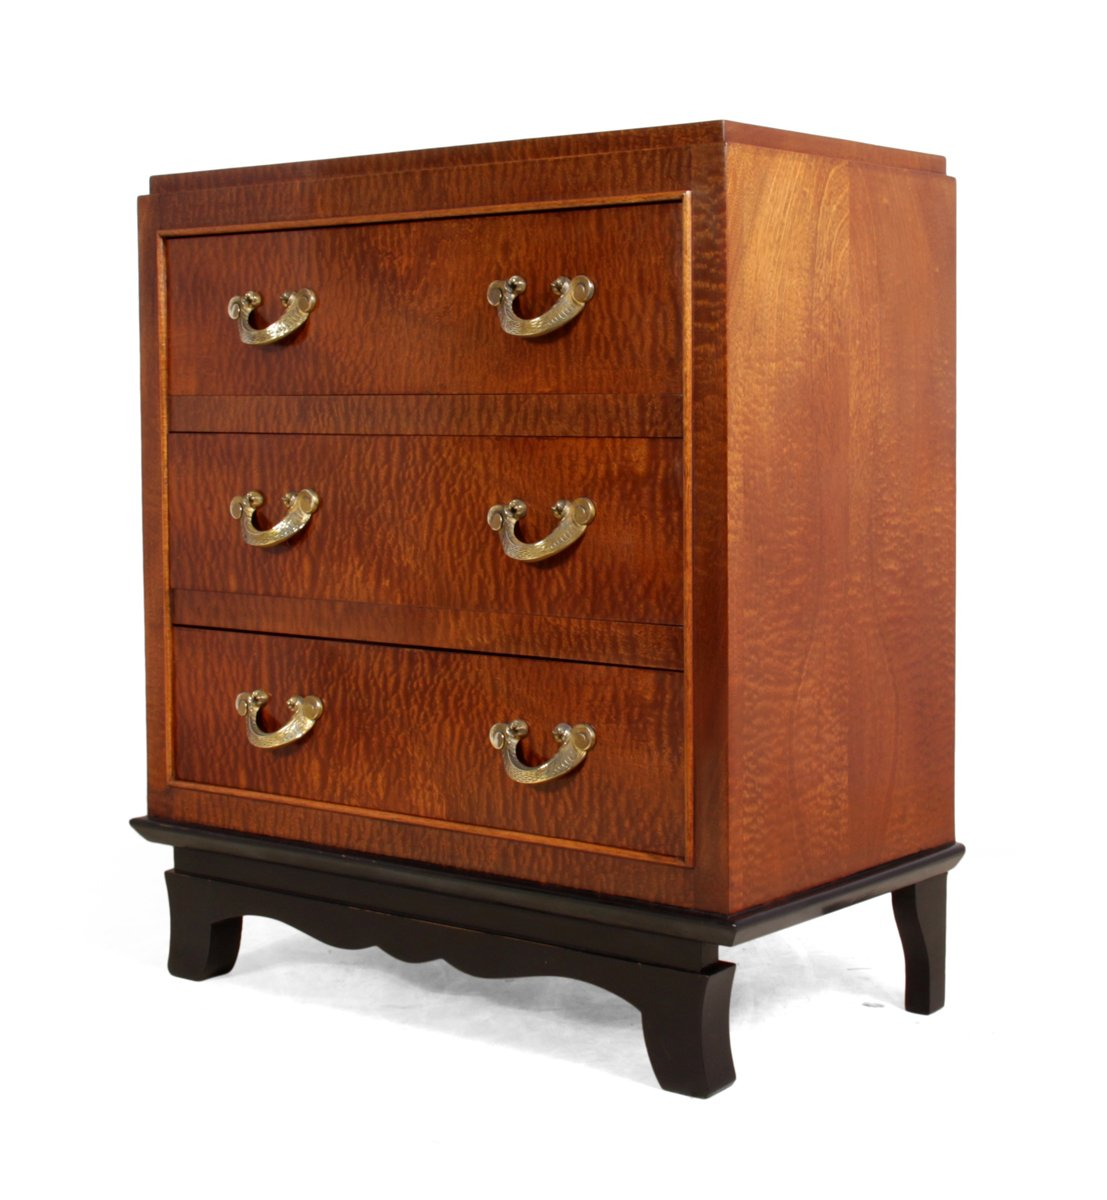 Art deco chest of drawers 1930s for sale at pamono for Miroir art deco 1930